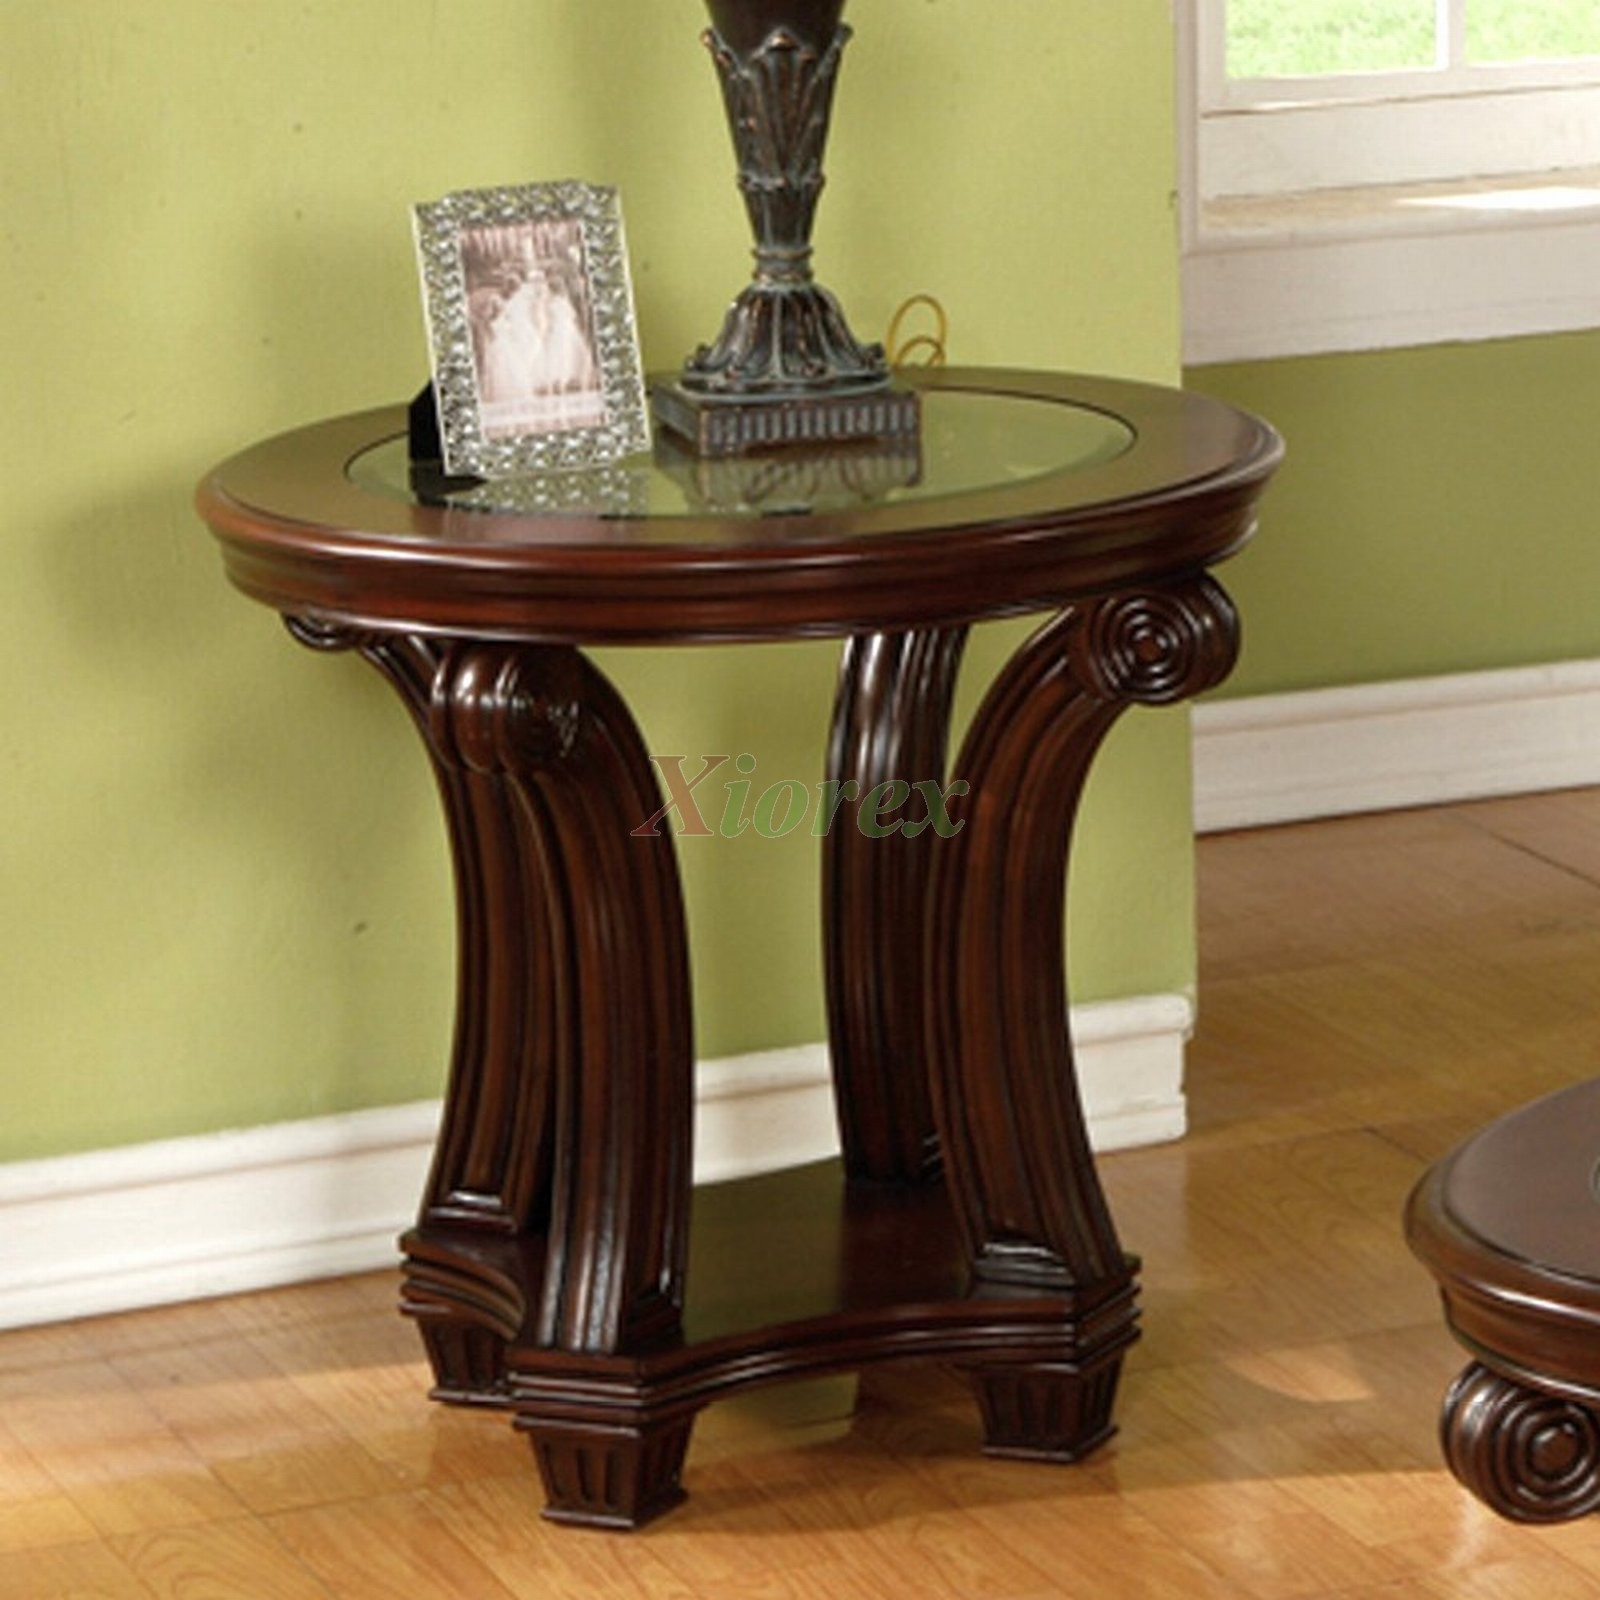 Furniture Montreal: Perseus Round End Table Living Room Furniture Montreal